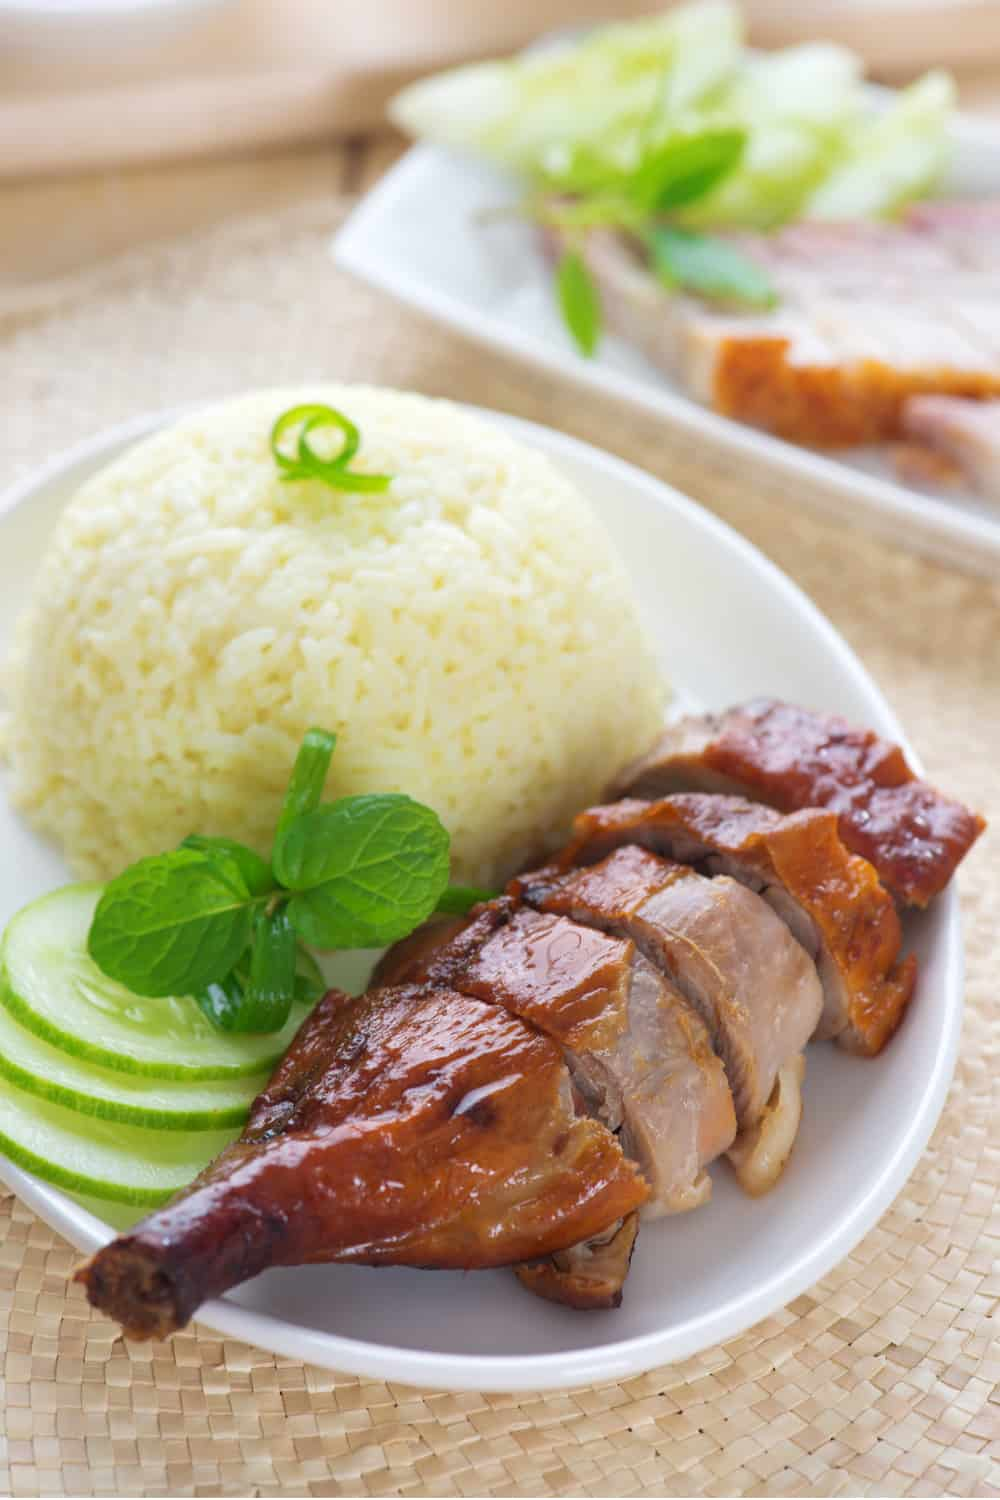 Hong Kong Street Food Roast Duck or Goose on Rice